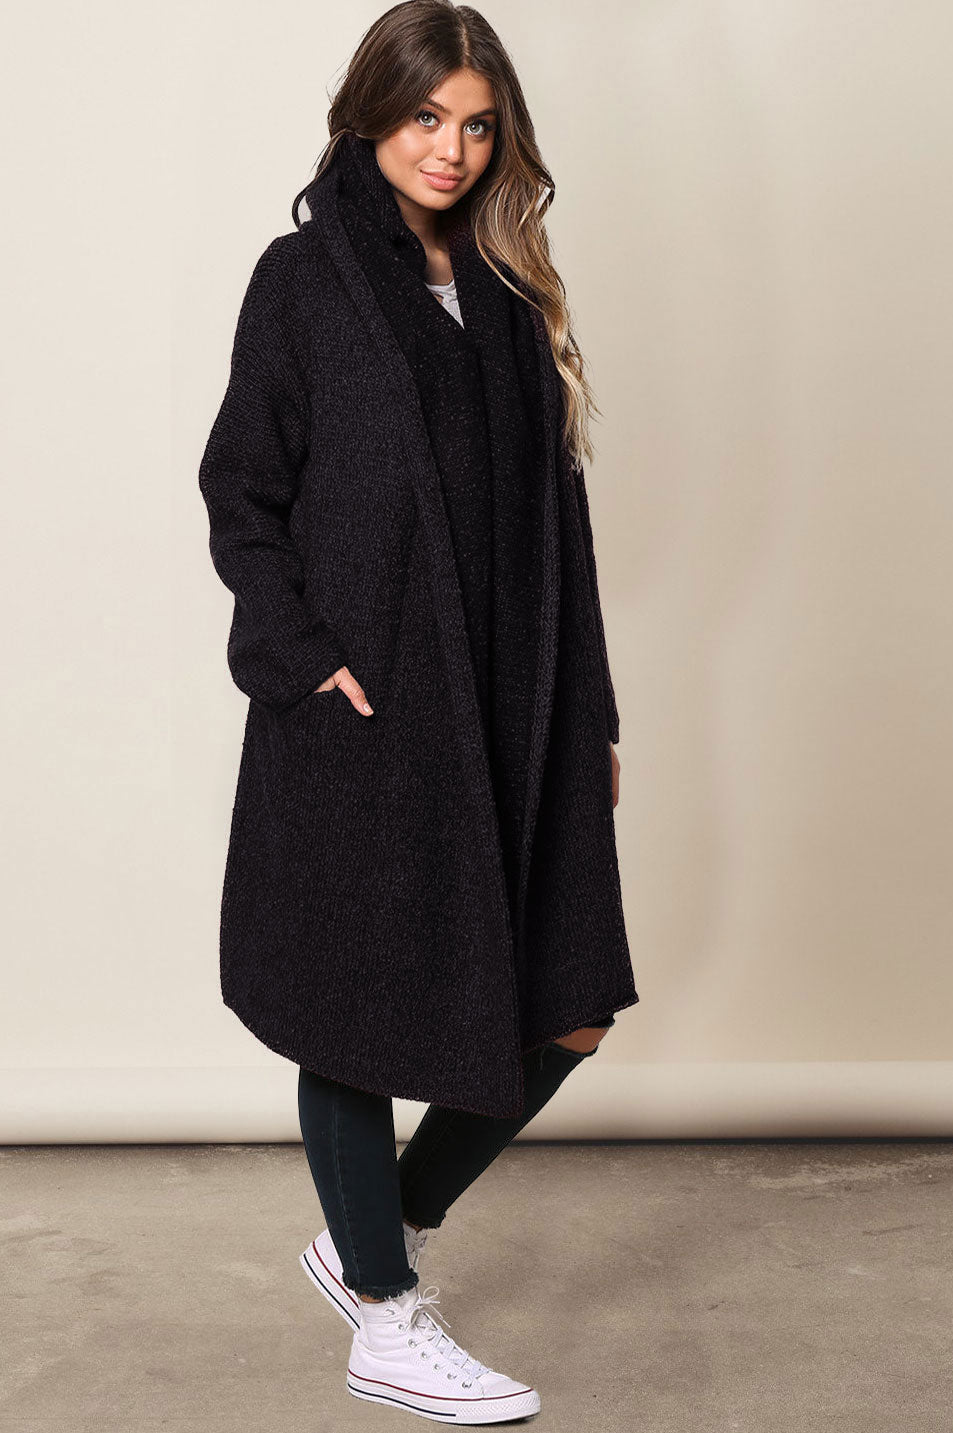 Best women's chunky thick open front collette long-line cardigan sweater coat. Best for fall autumn outfit ideas. Black